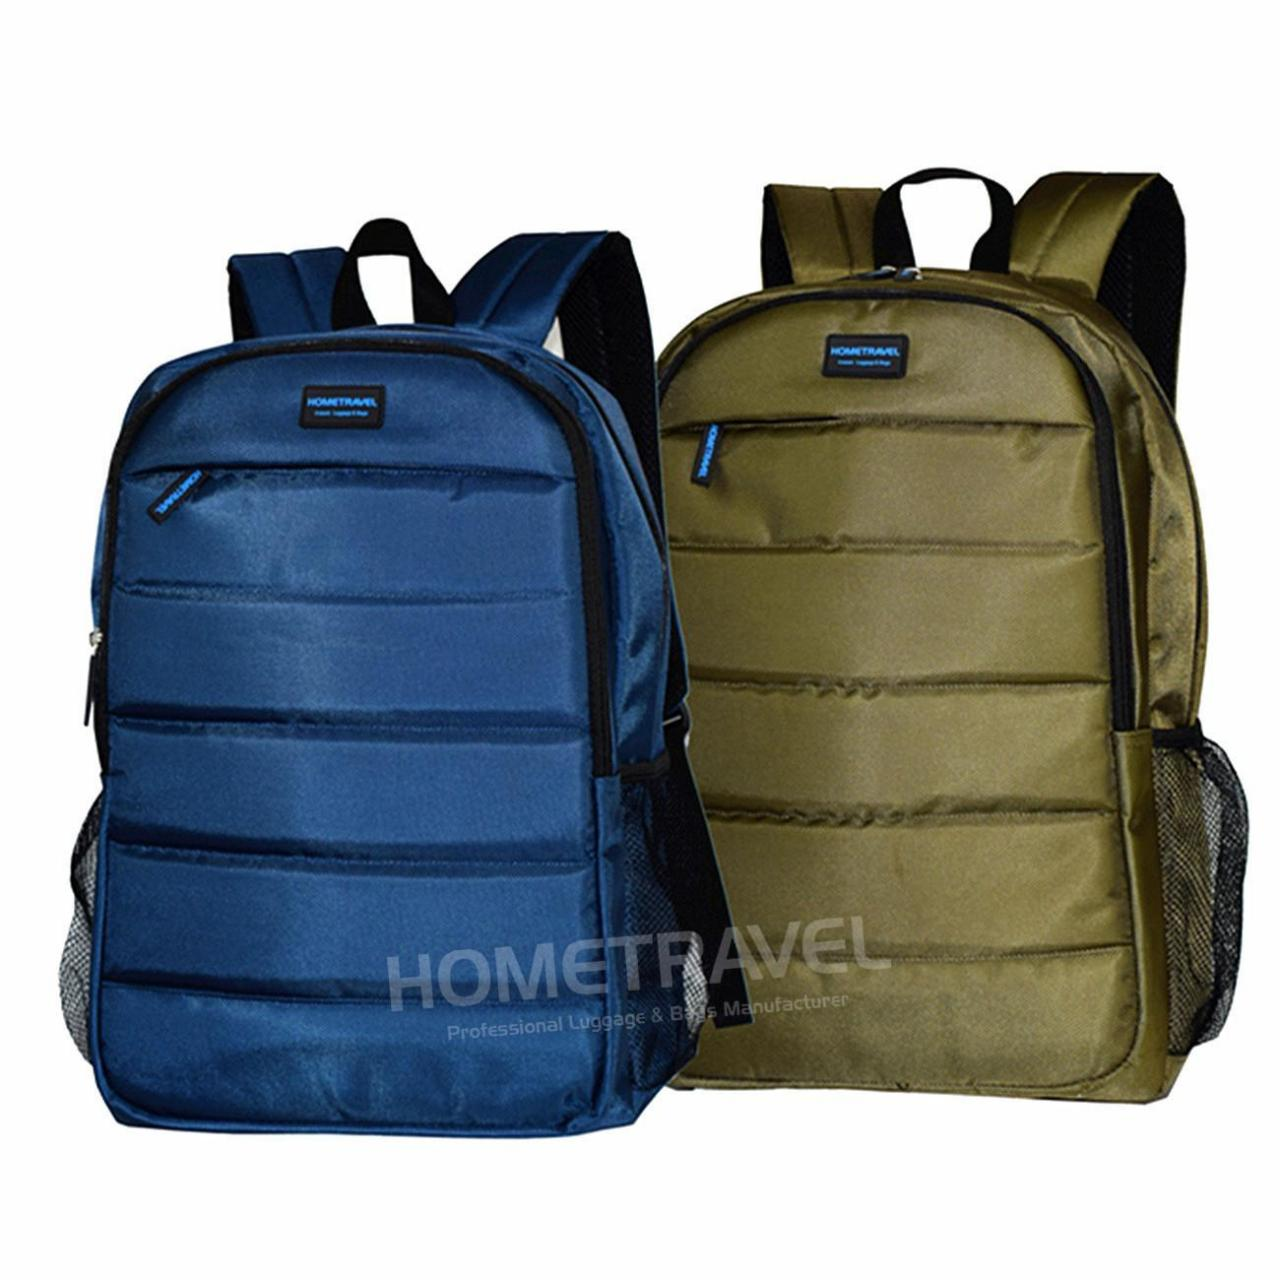 China 2016 Fashion 1680d Nylon Travel Backpack/Laptop Bag/Computer Bag Model No.HTB-0419 on sale